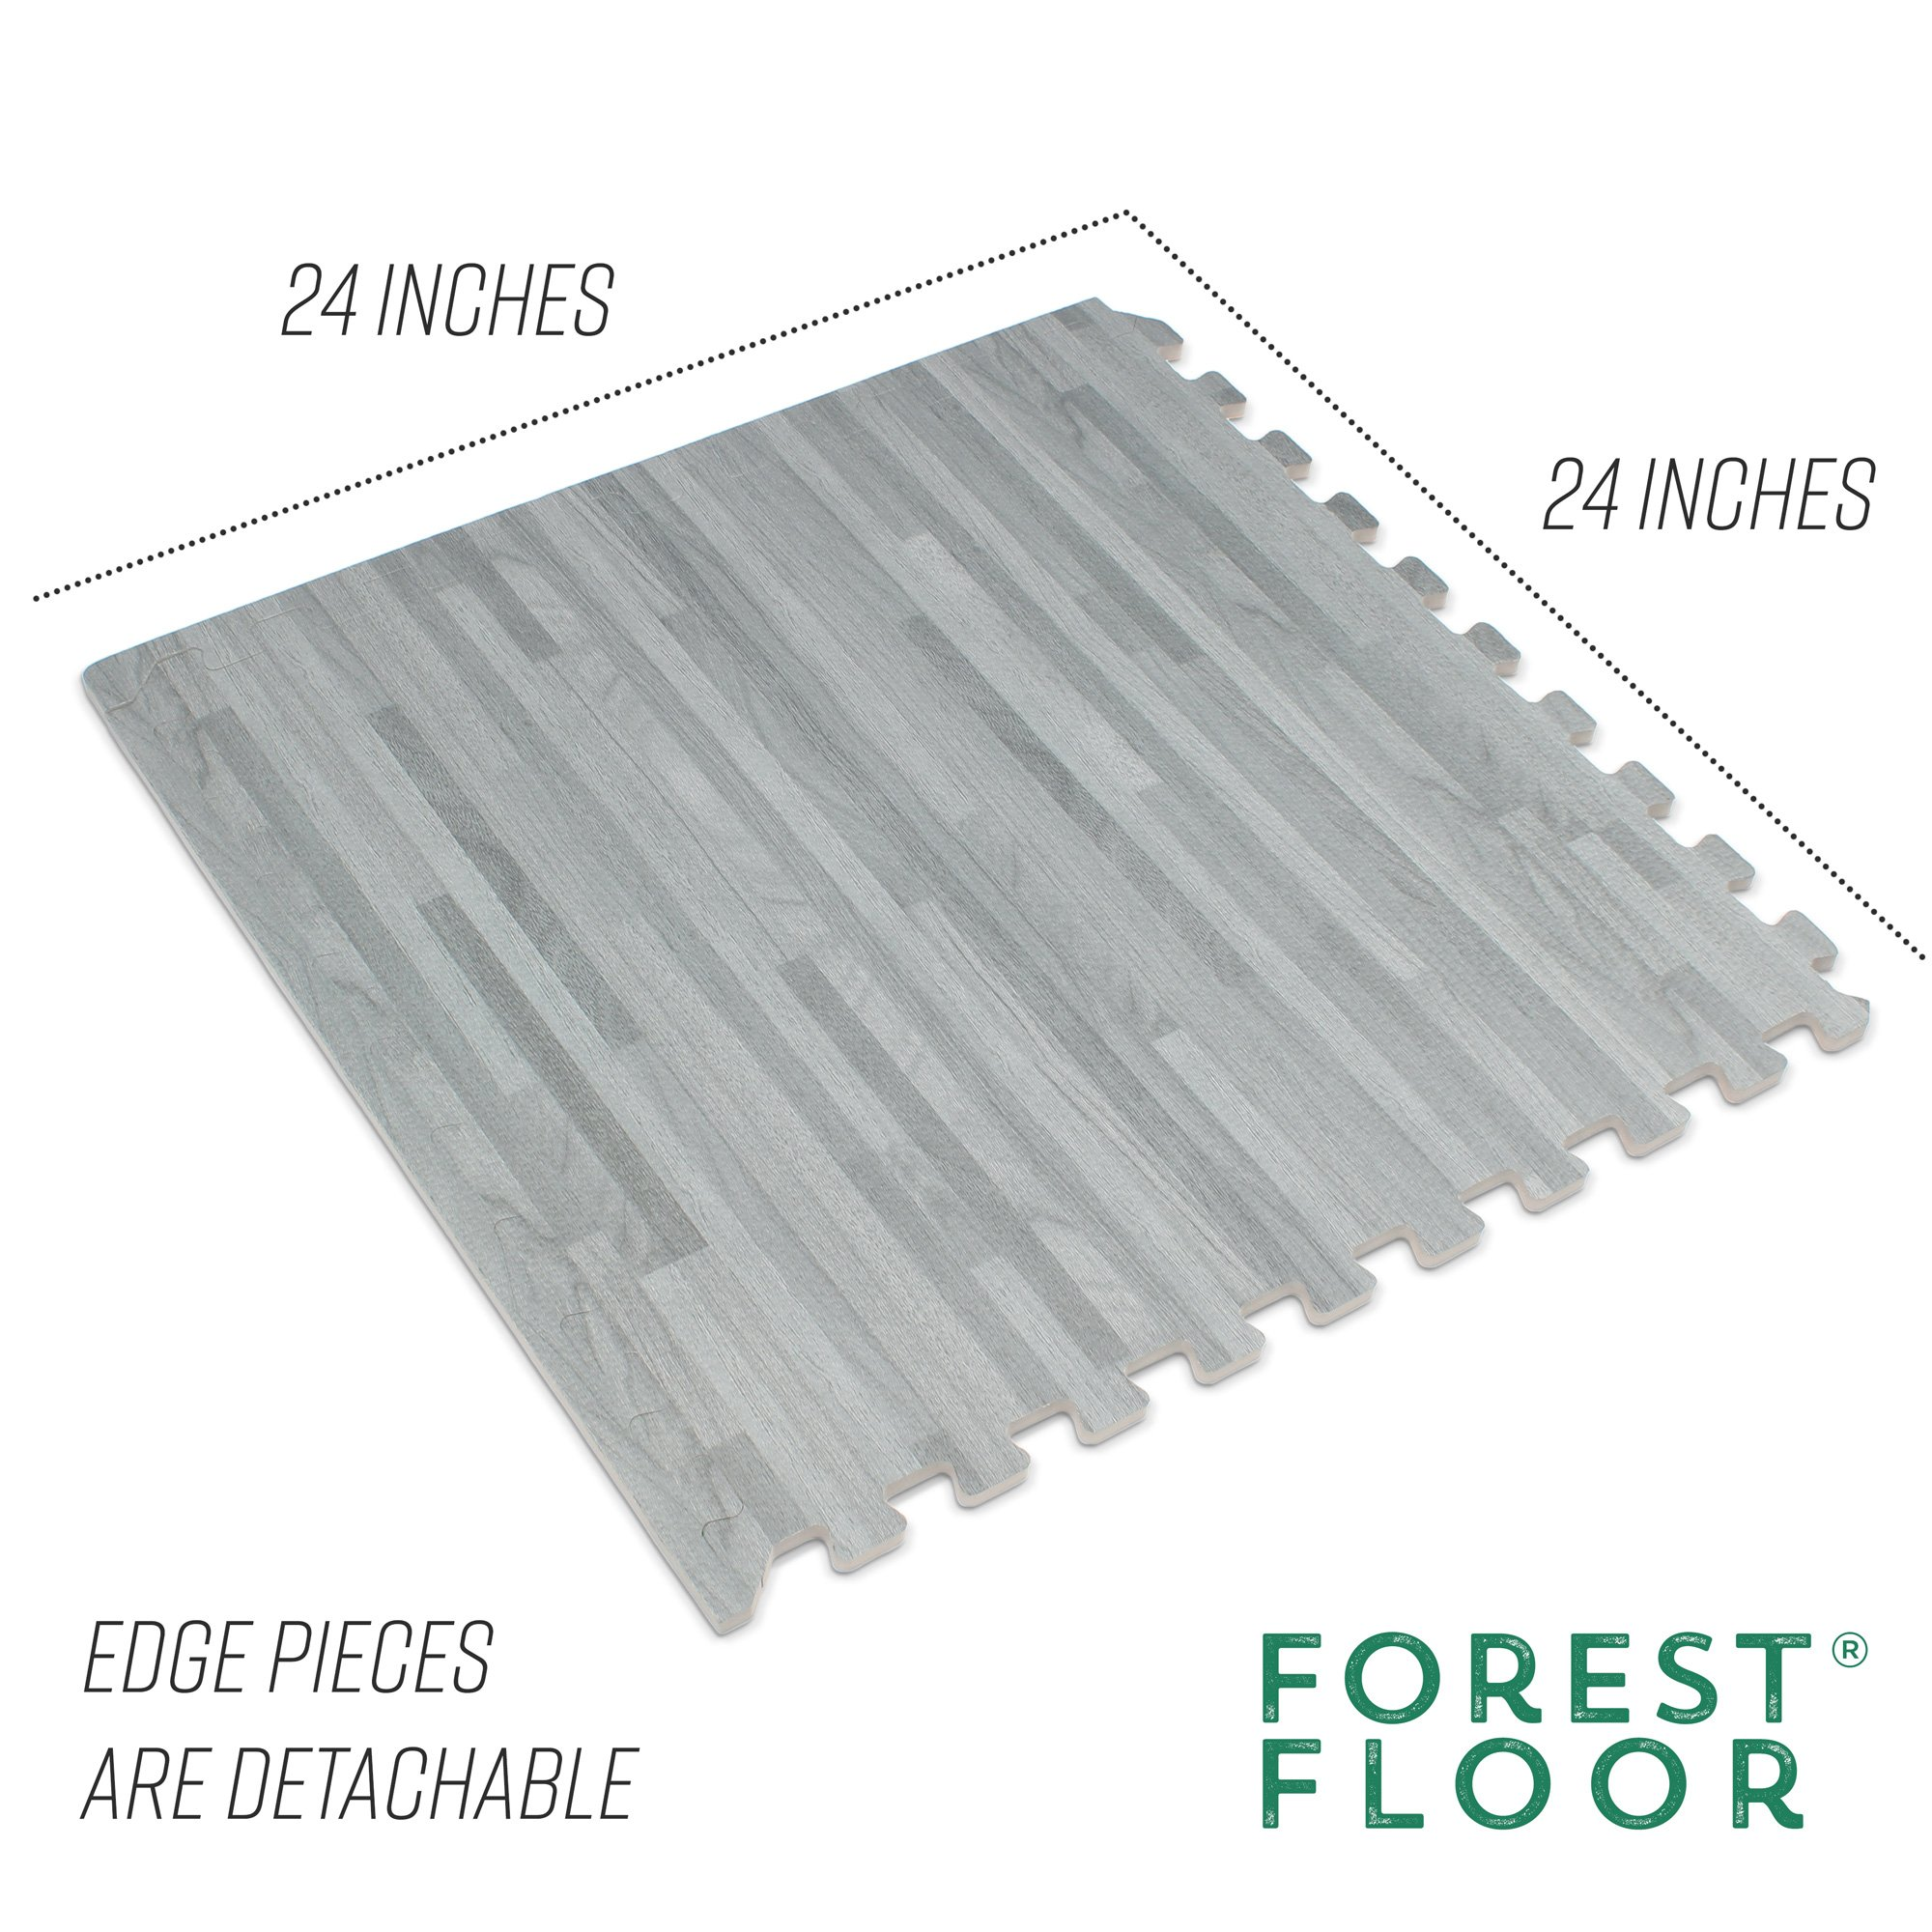 Forest Floor 3/8'' Thick Printed Wood Grain Interlocking Foam Floor Mats, 16 Sq Ft (4 Tiles), Slate by Forest Floor (Image #4)